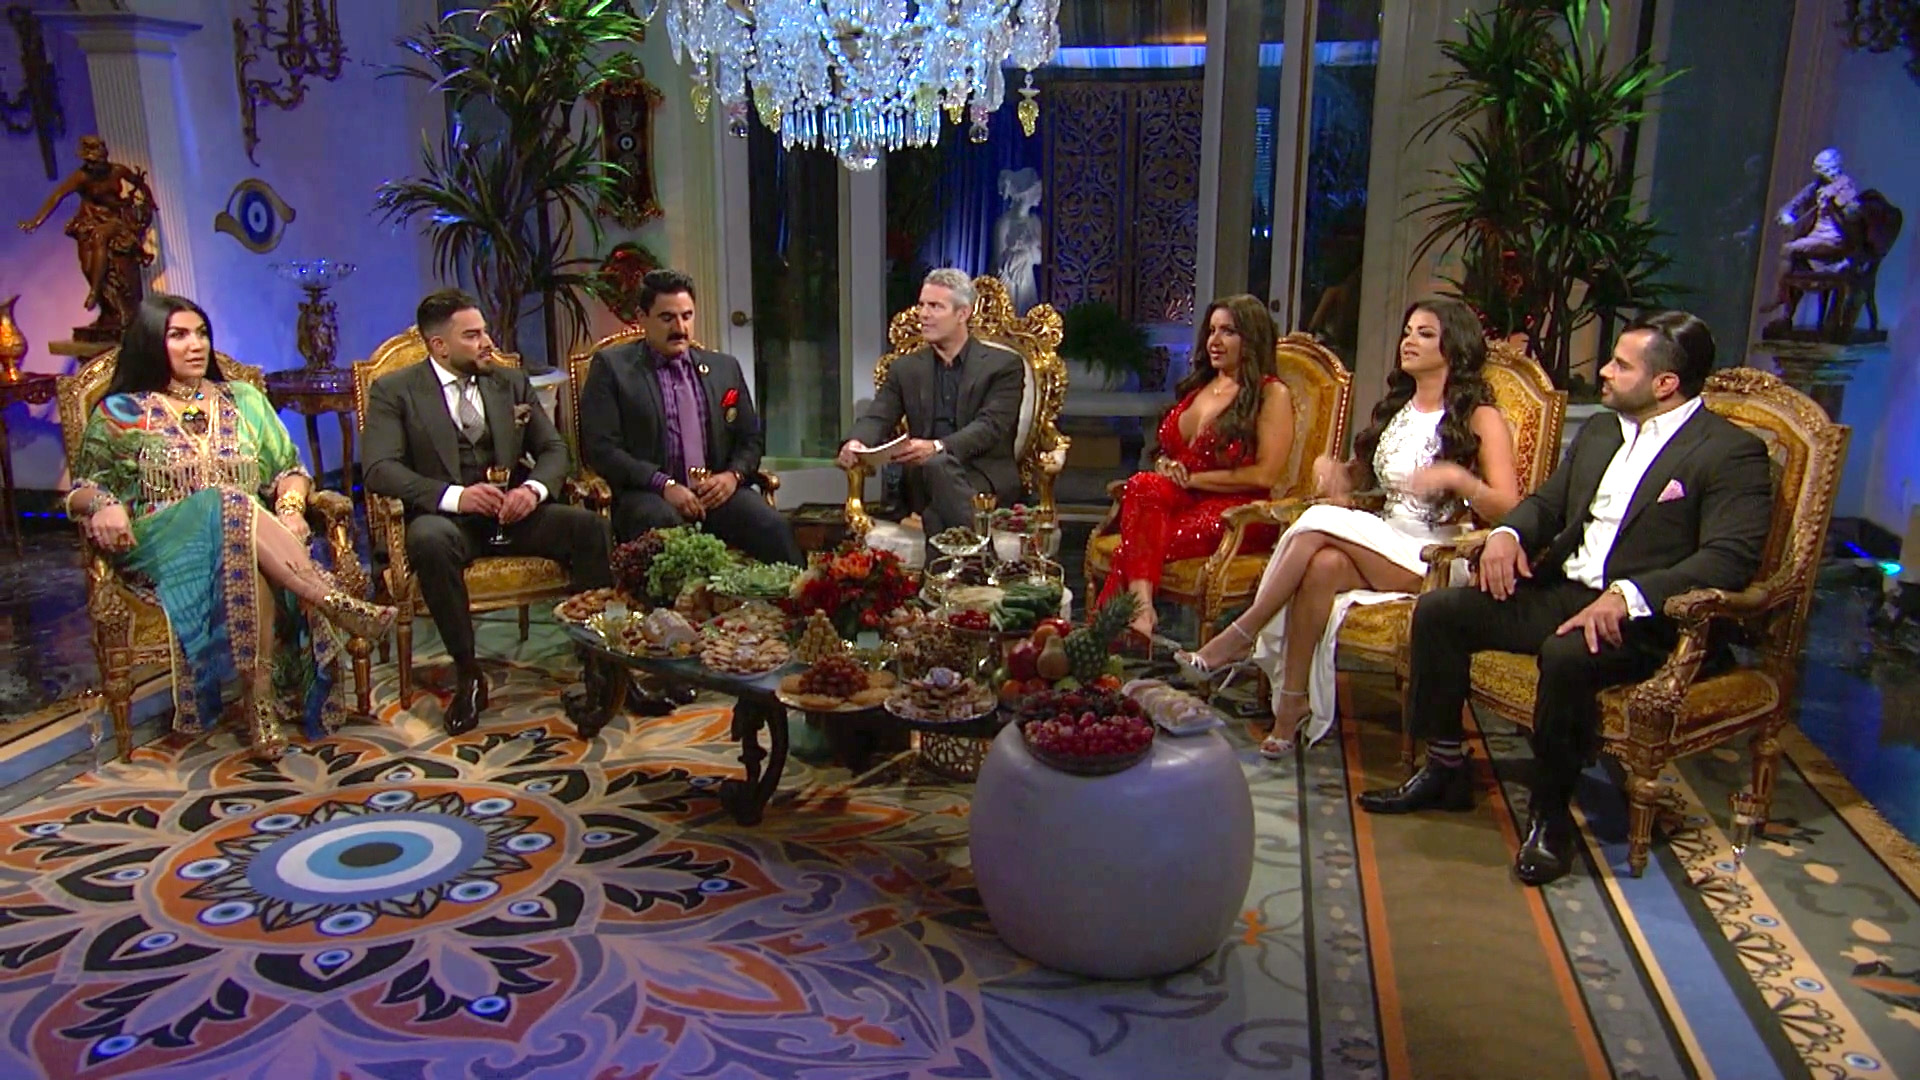 What are the Shahs Doing After the Reunion?